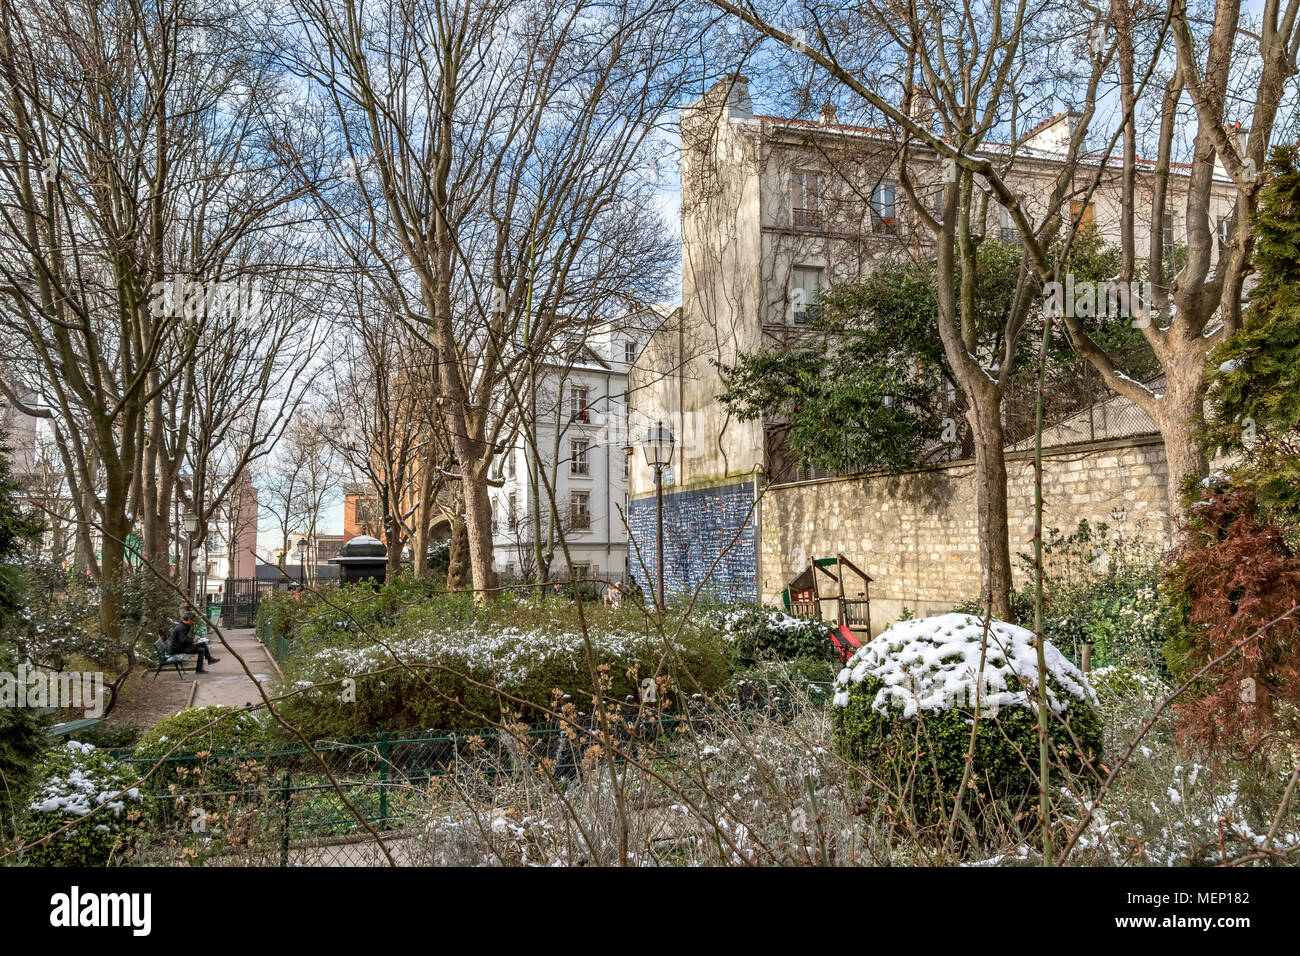 A lone man sits on a bemch inJehan Rictus Square with the Le Mur des je taime in winter, with snow on the shrubs, Abbesses, Montmartre, Paris, France - Stock Image